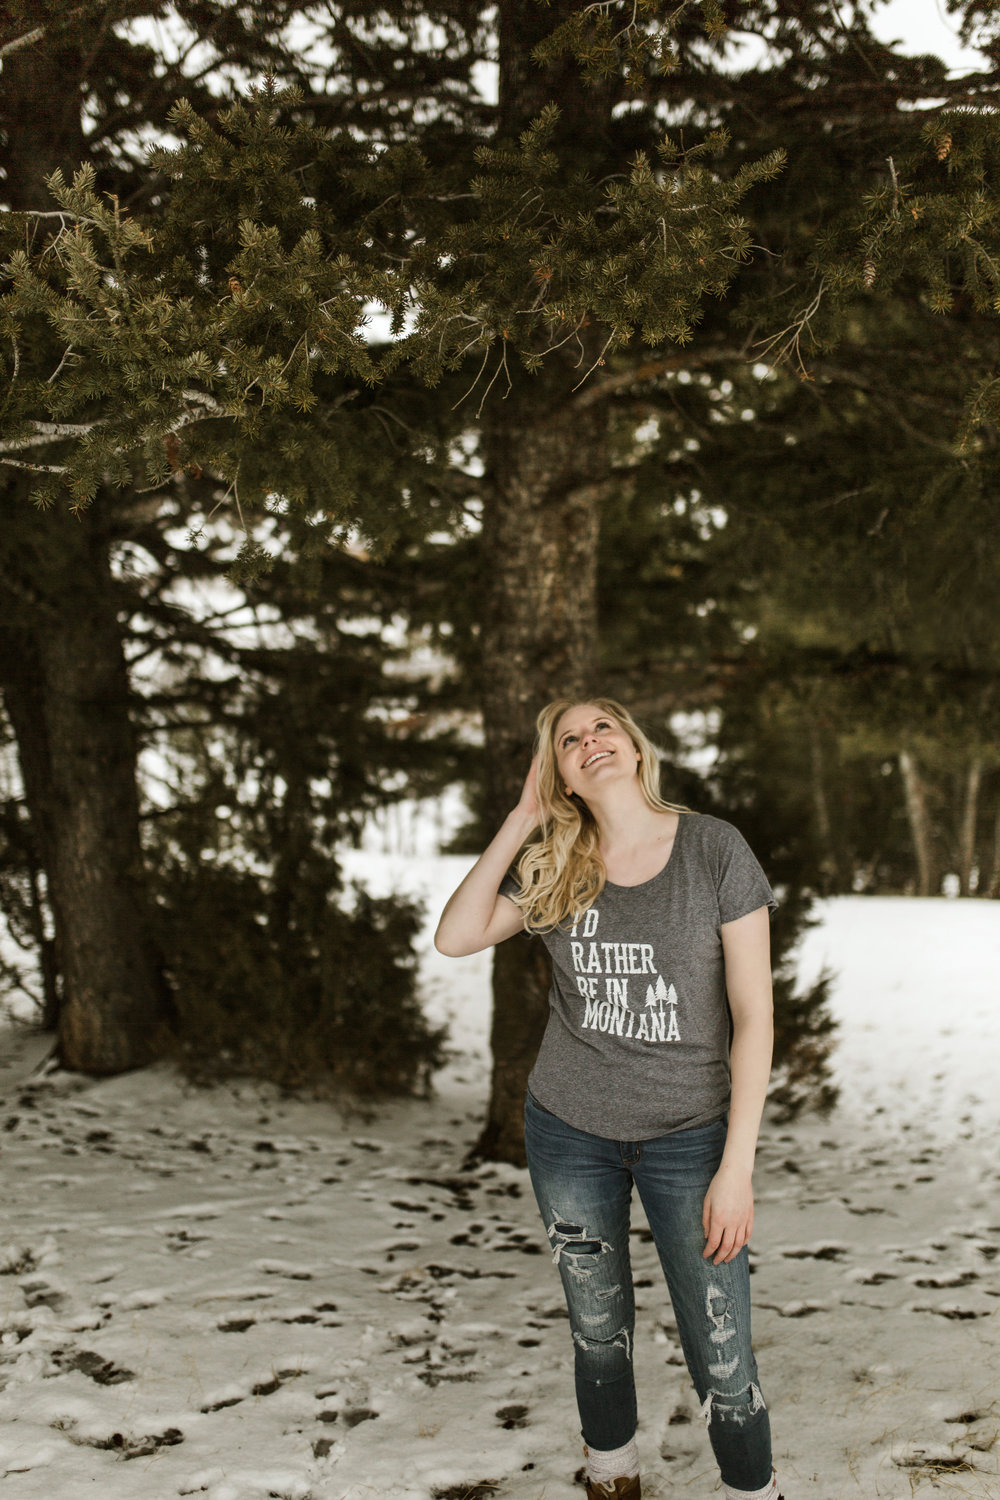 "The Montana Scene ""I'd rather be in Montana"" tee shirt by blogger Bri Sul"